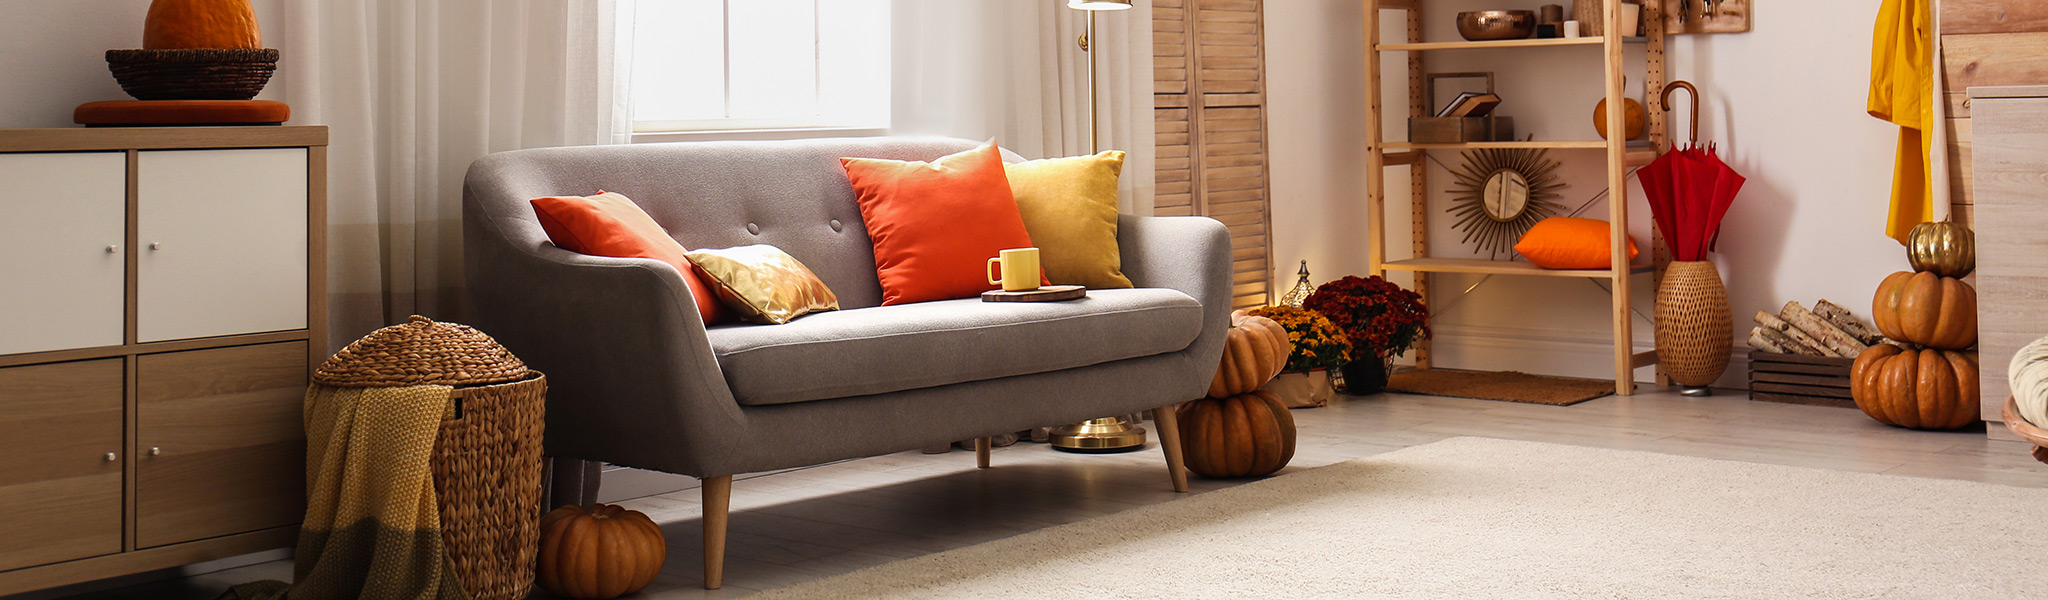 photo showing a rustic, fall decorated living space with a grey couch, light wood furniture accents, and orange pumpkins.